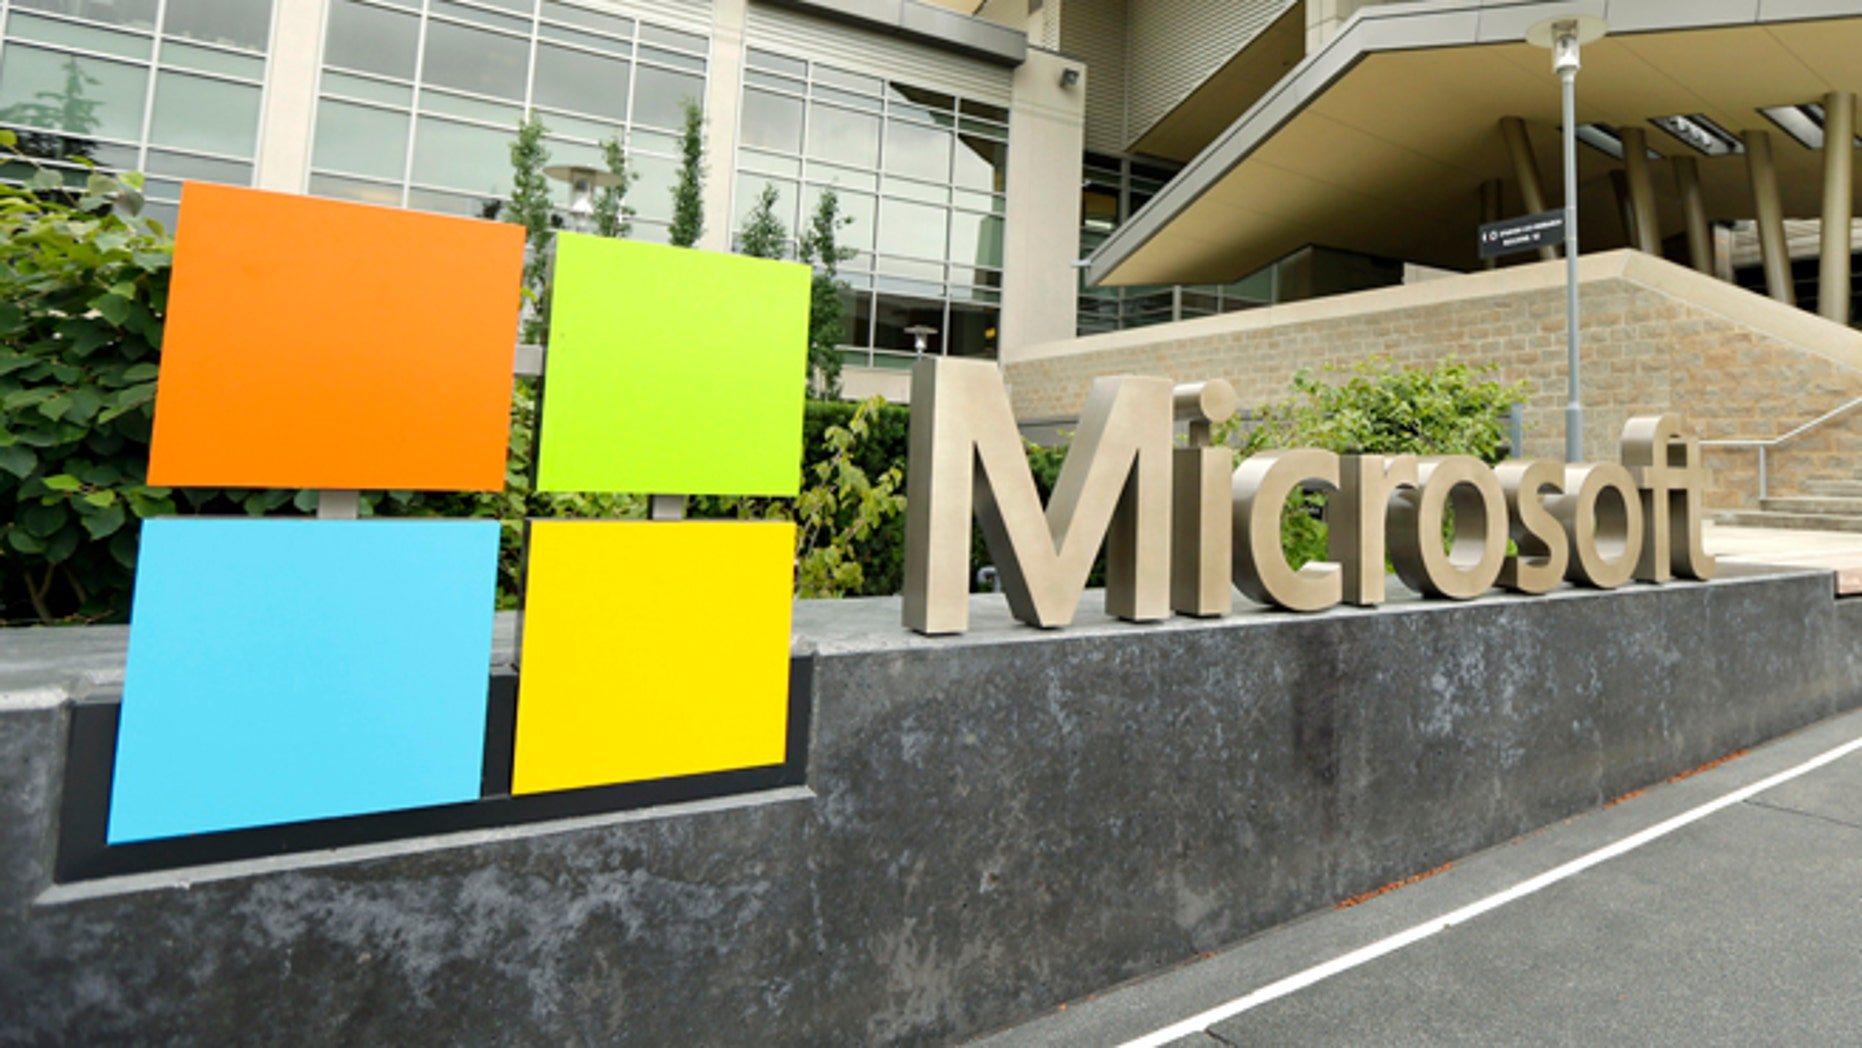 File photo - This July 3, 2014 photo shows Microsoft Corp. signage outside the Microsoft Visitor Center in Redmond, Wash. Microsoft on Thursday, July 17, 2014.